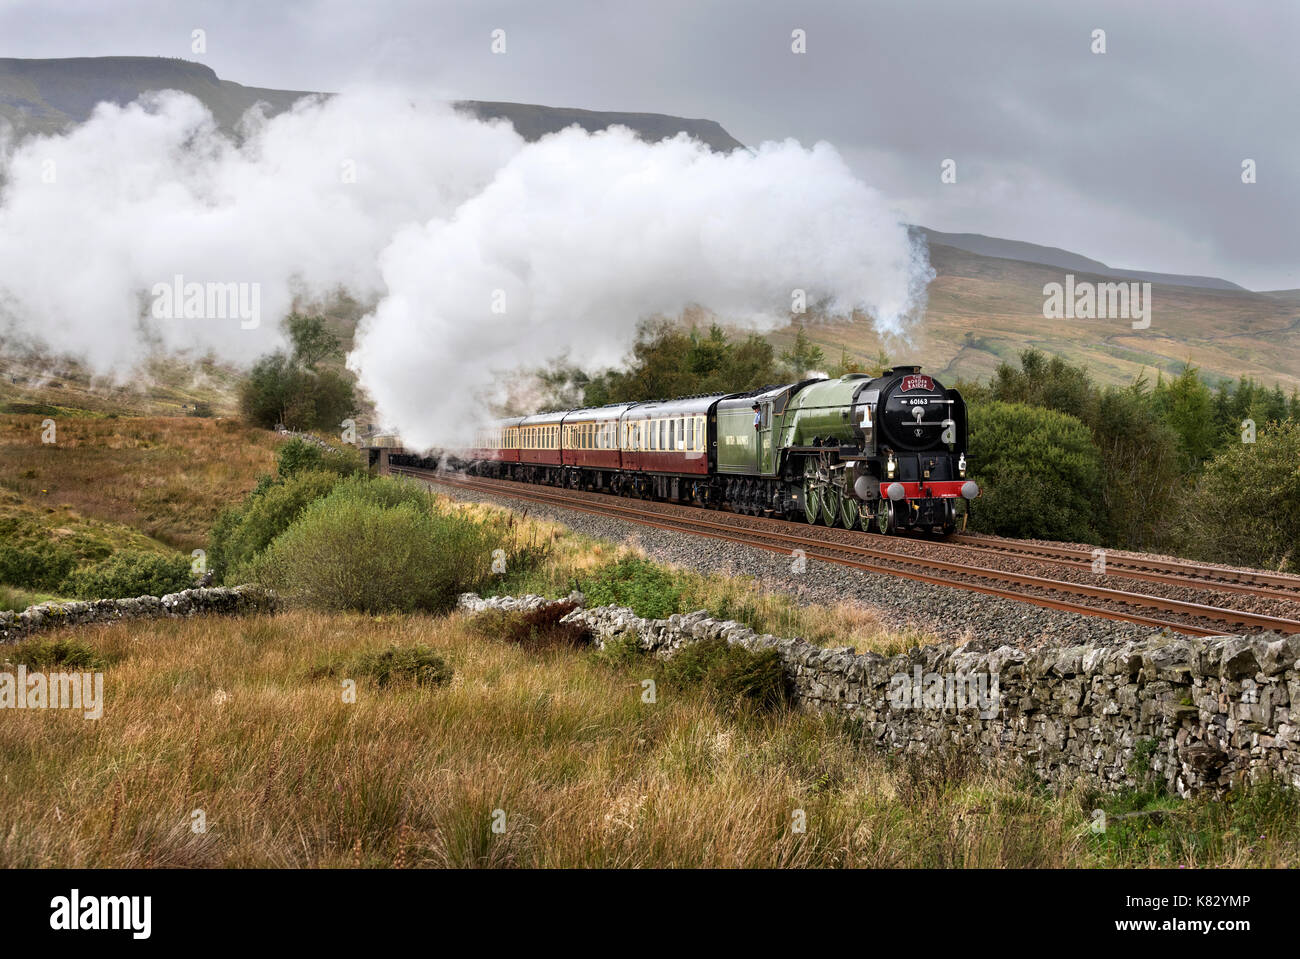 The Tornado locomotive hauls the 'Border Raider' steam special southward on the Settle- Carlisle railway line. Seen at the line's summit, Ais Gill. - Stock Image